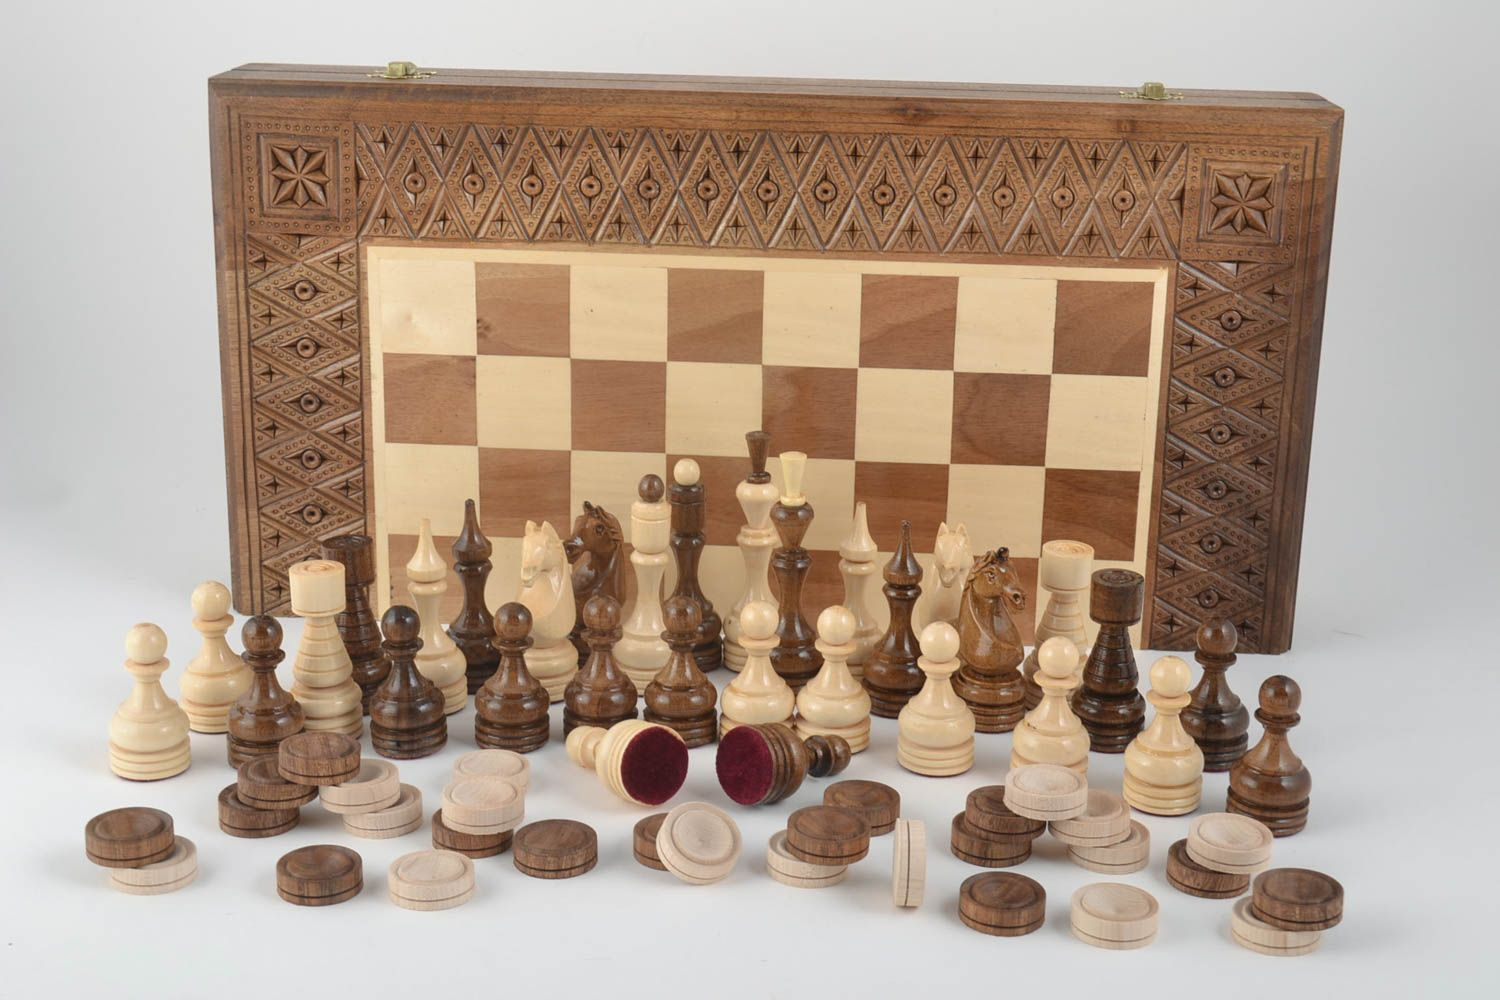 Handmade board games wooden chessboard chess pieces best gifts for him photo 1